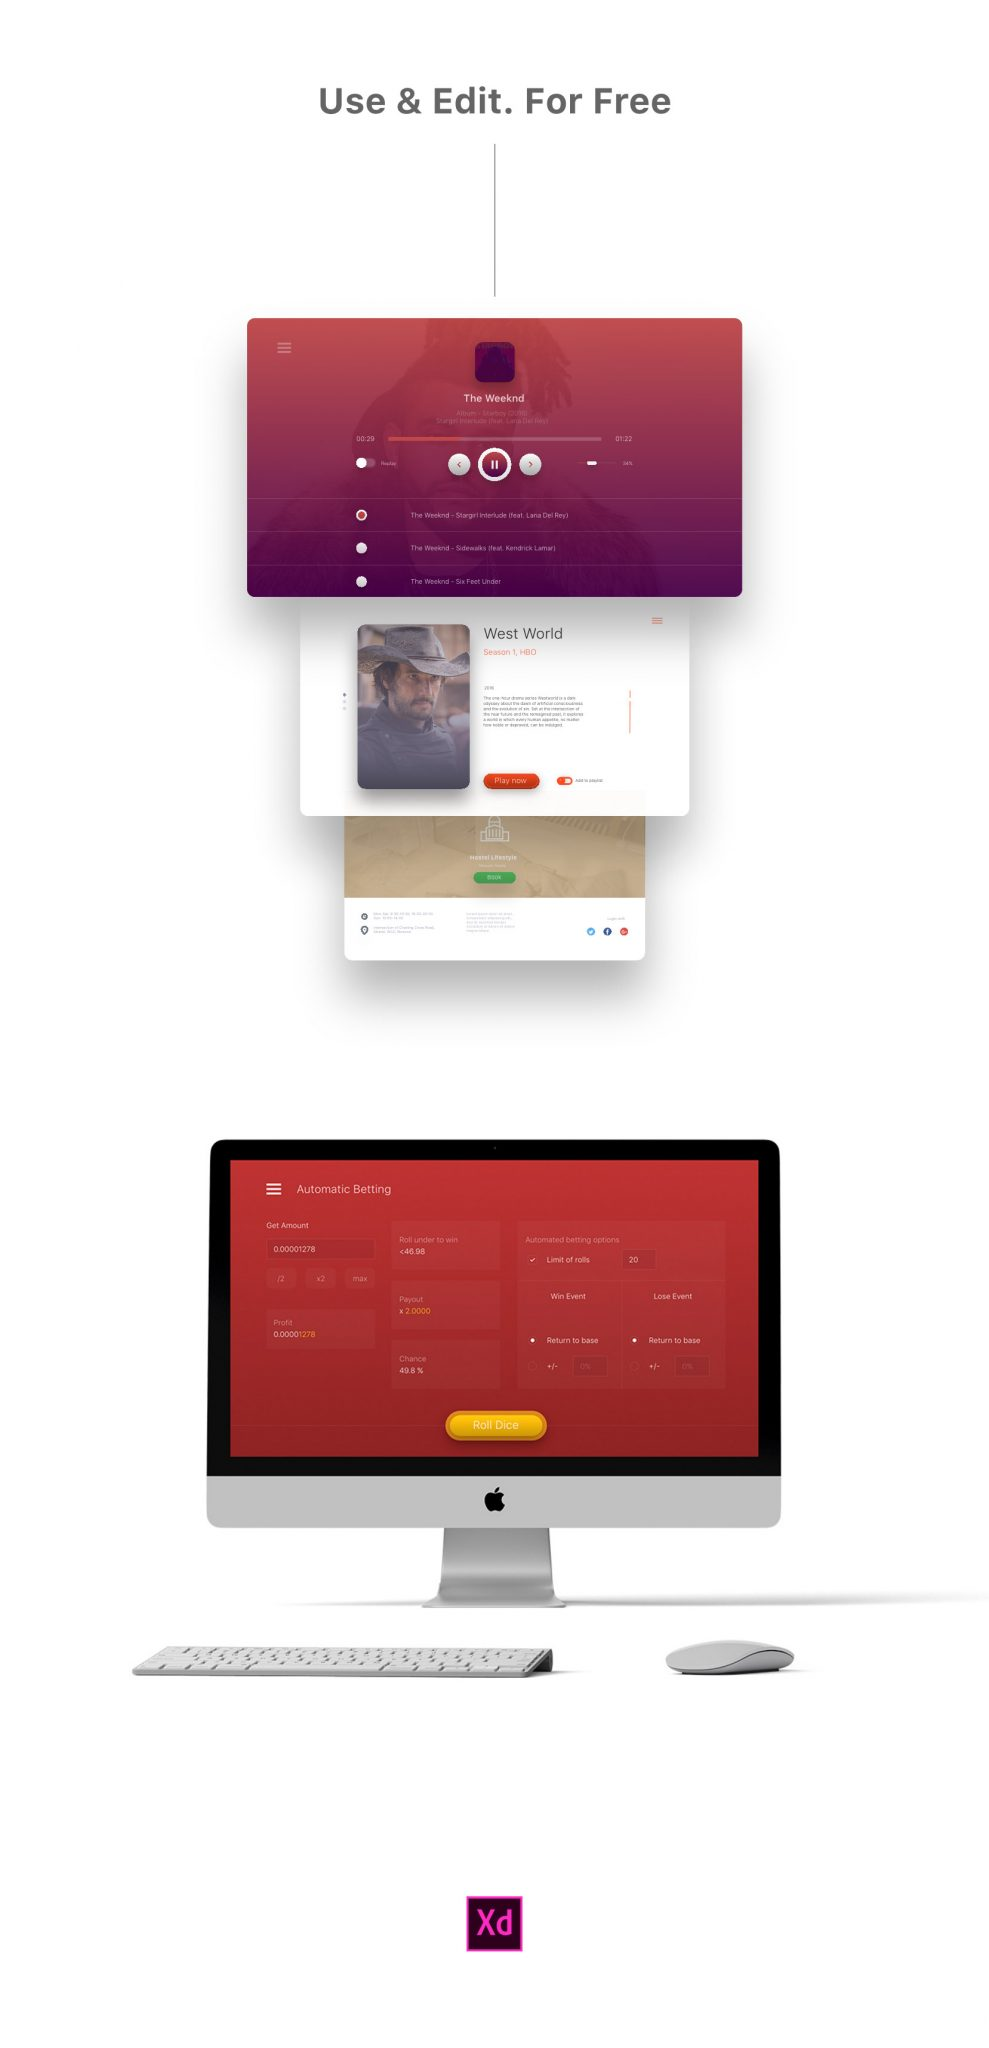 XD UI Kits for personal and commercial use for free